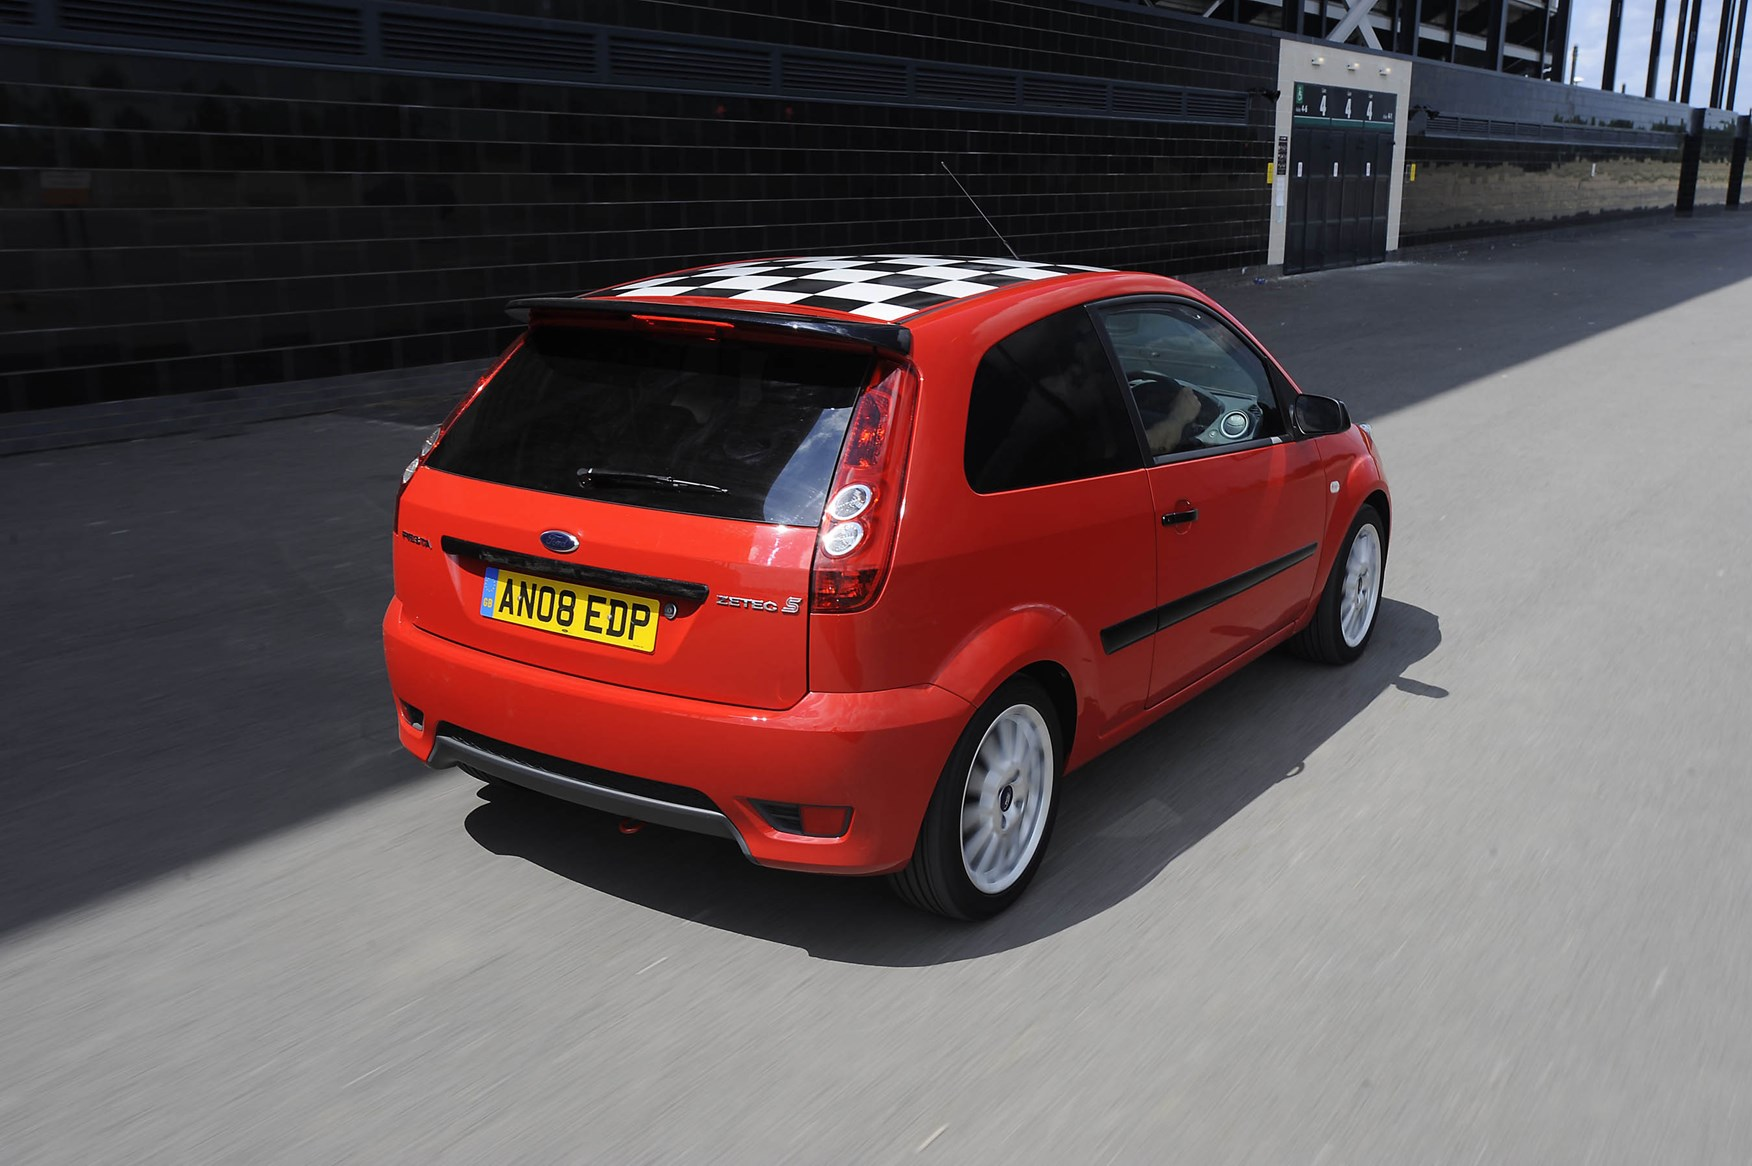 Used Ford Fiesta Hatchback (2002 - 2008) Practicality | Parkers